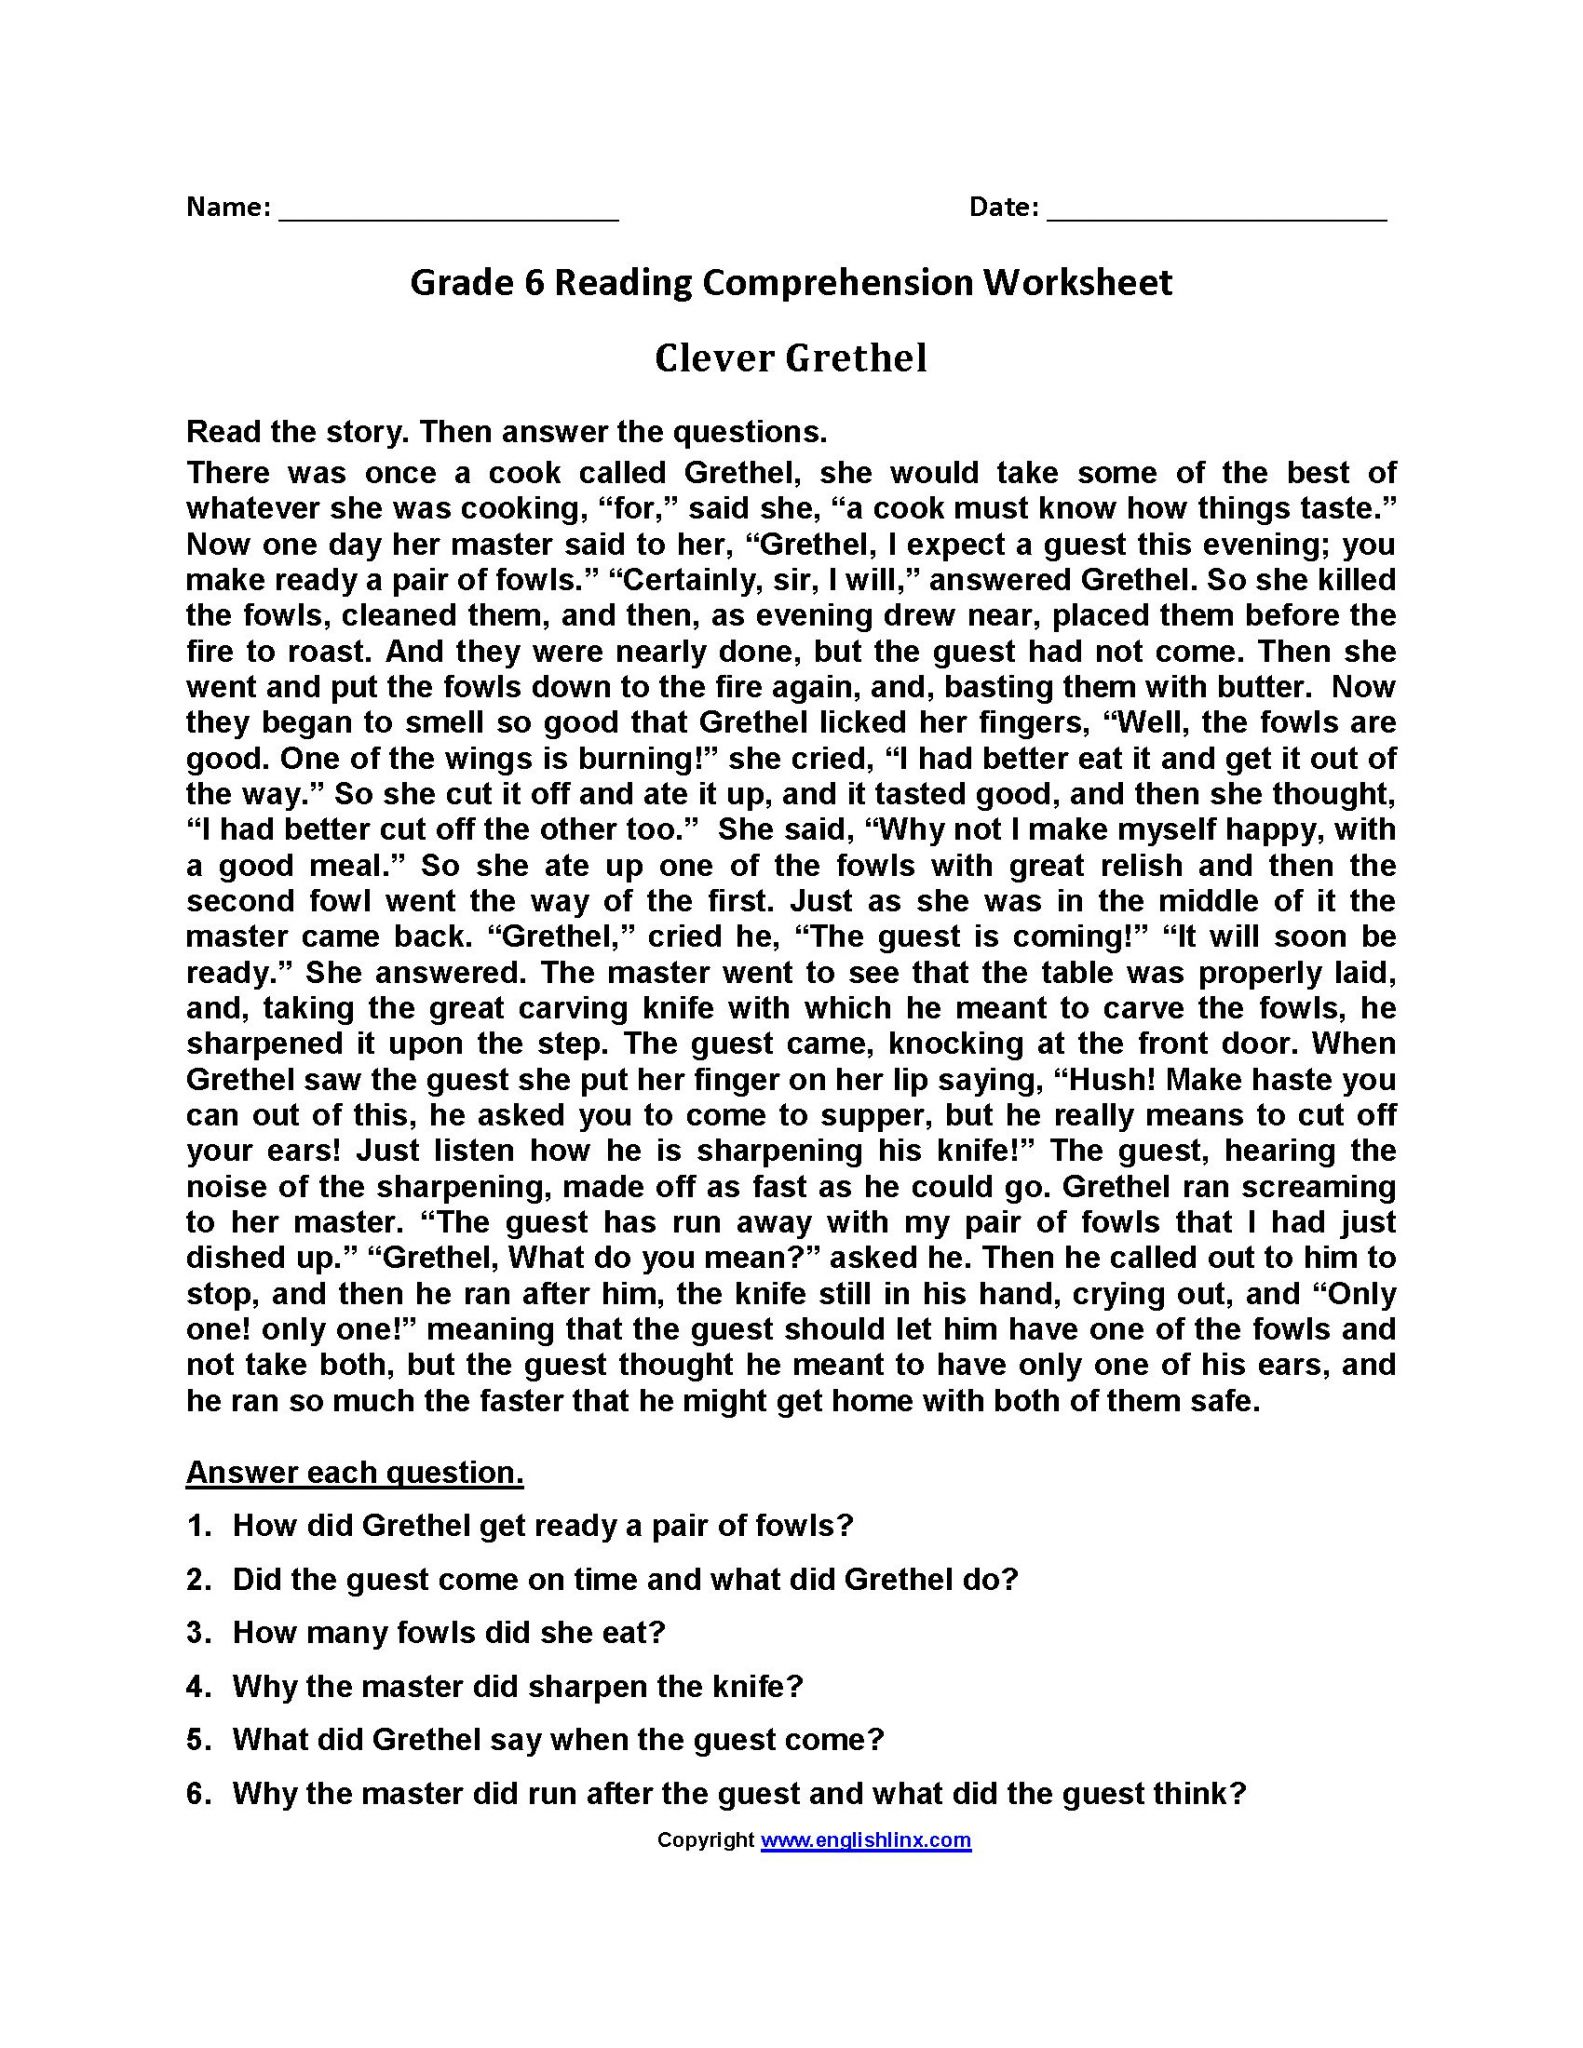 Prehension Worksheet For 3rd Grade